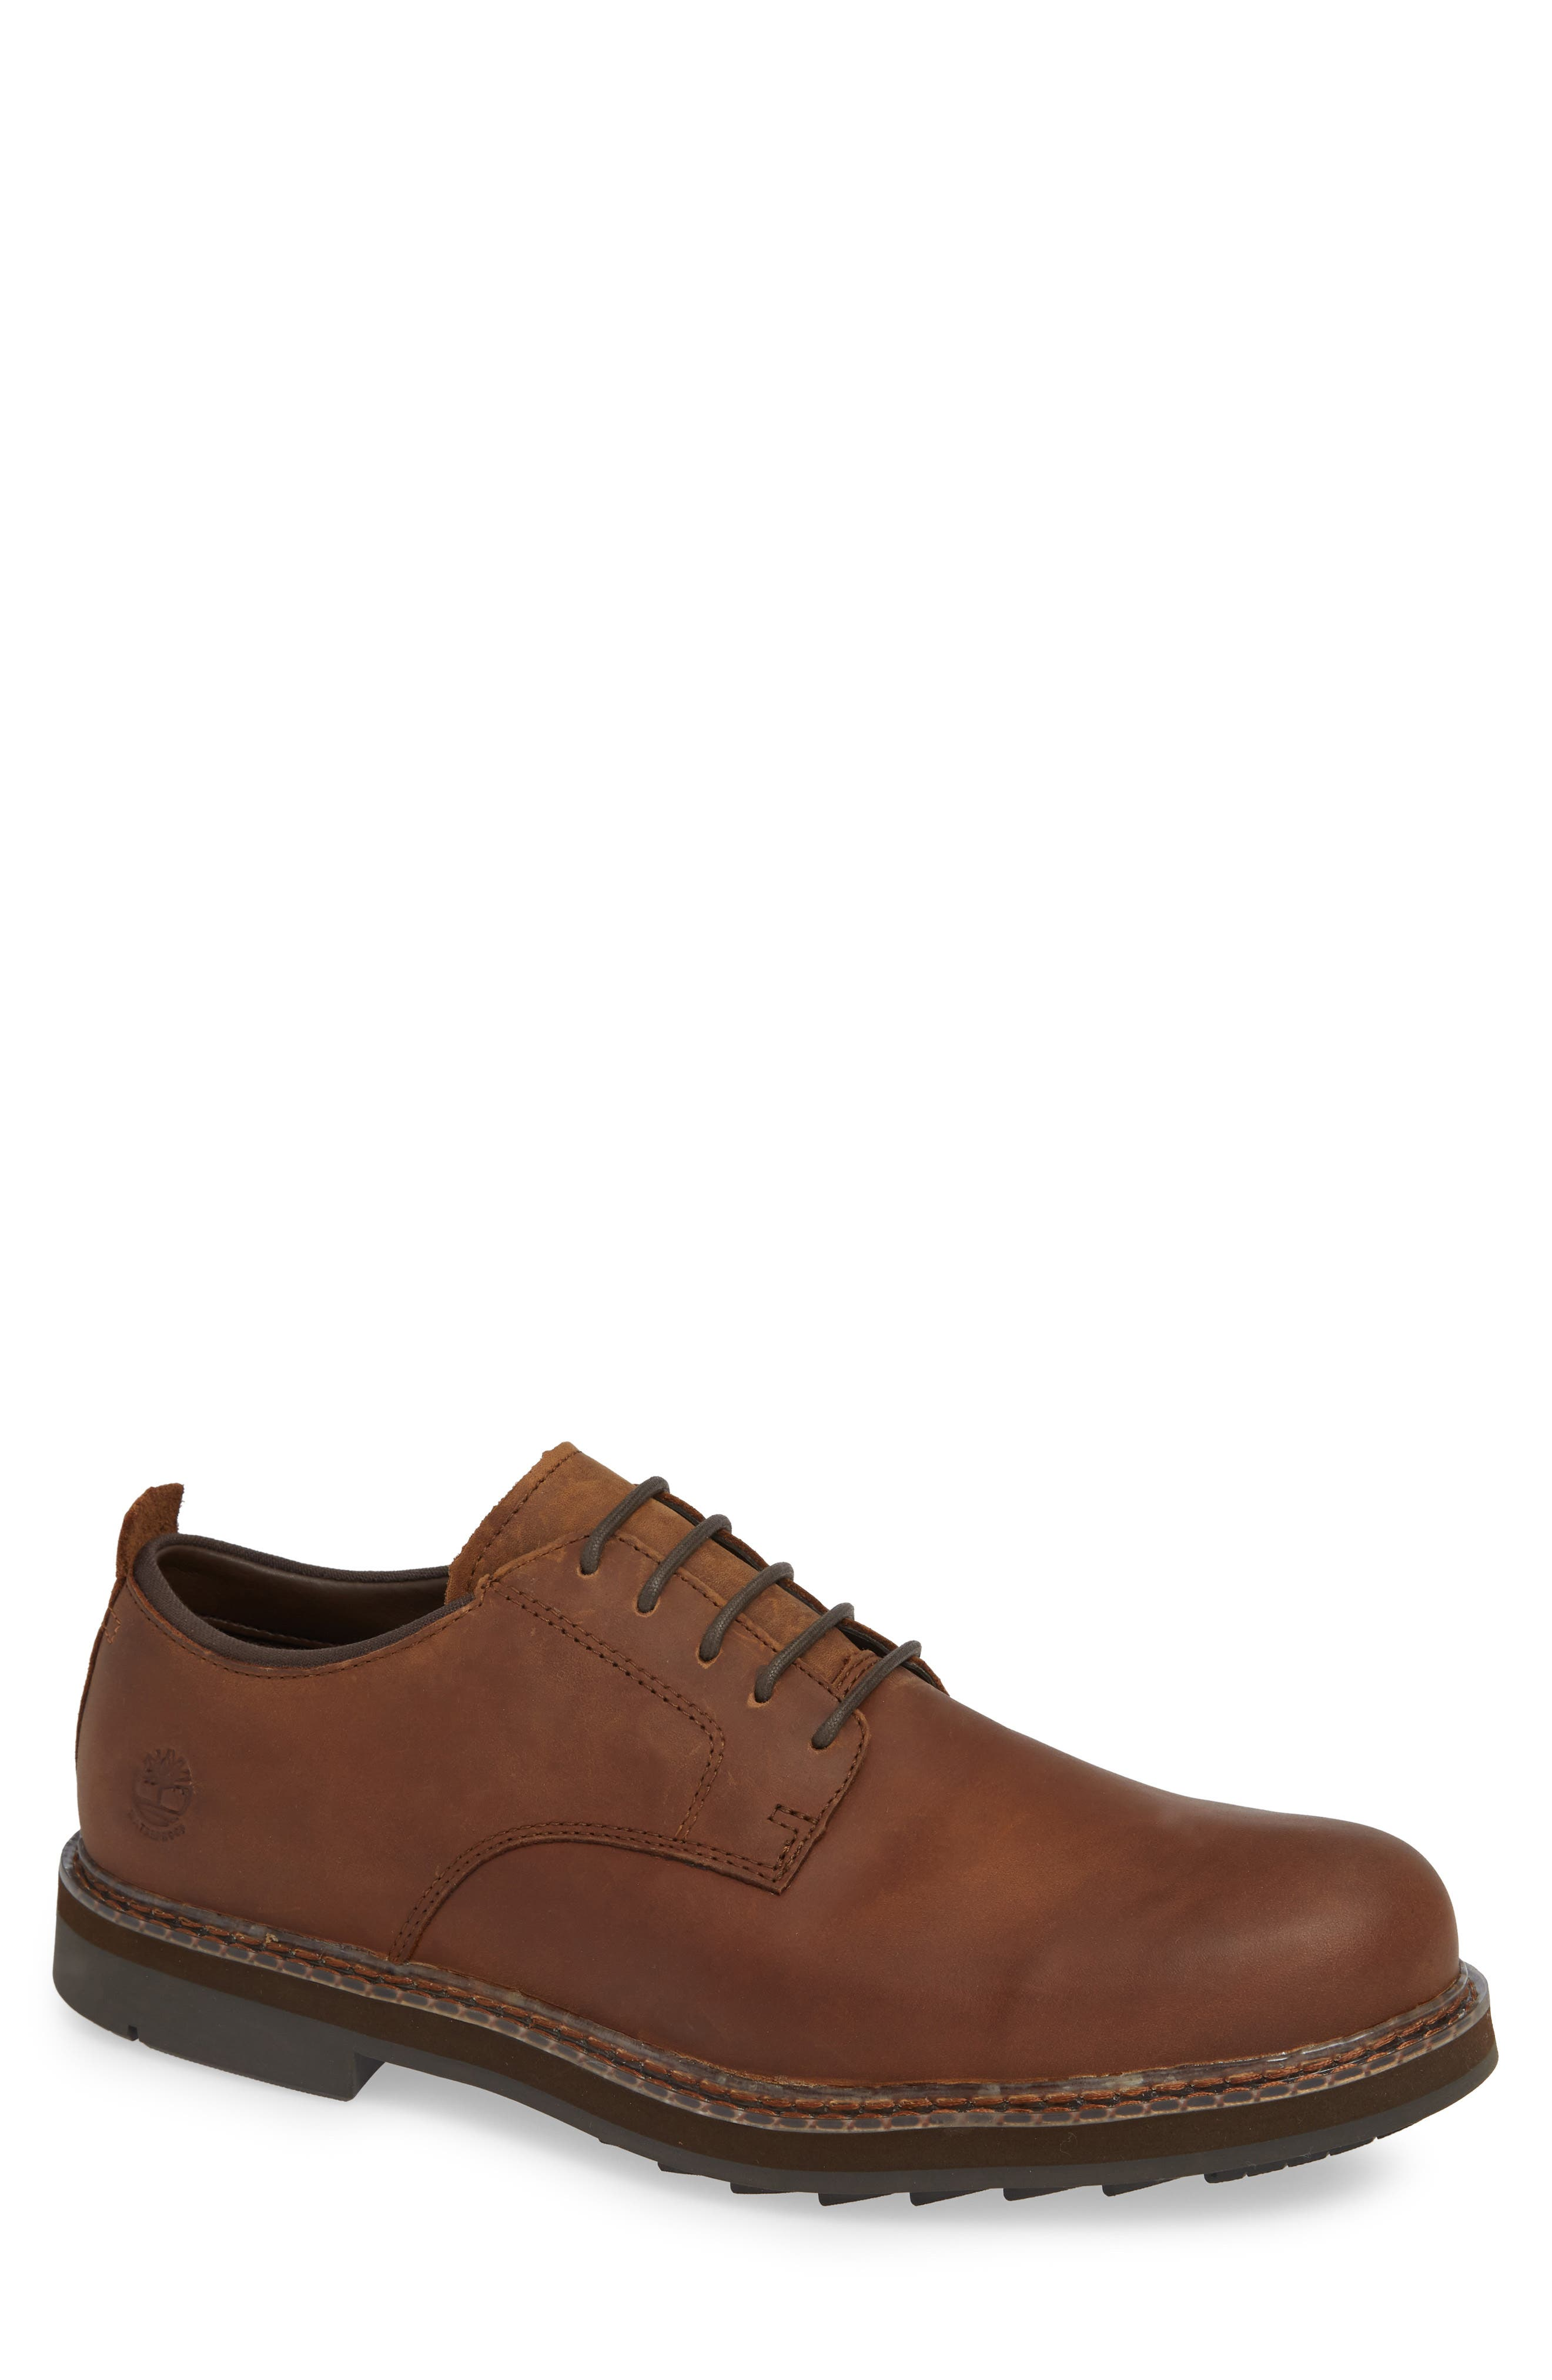 Squall Canyon Waterproof Plain Toe Derby,                             Main thumbnail 1, color,                             COPPER LEATHER